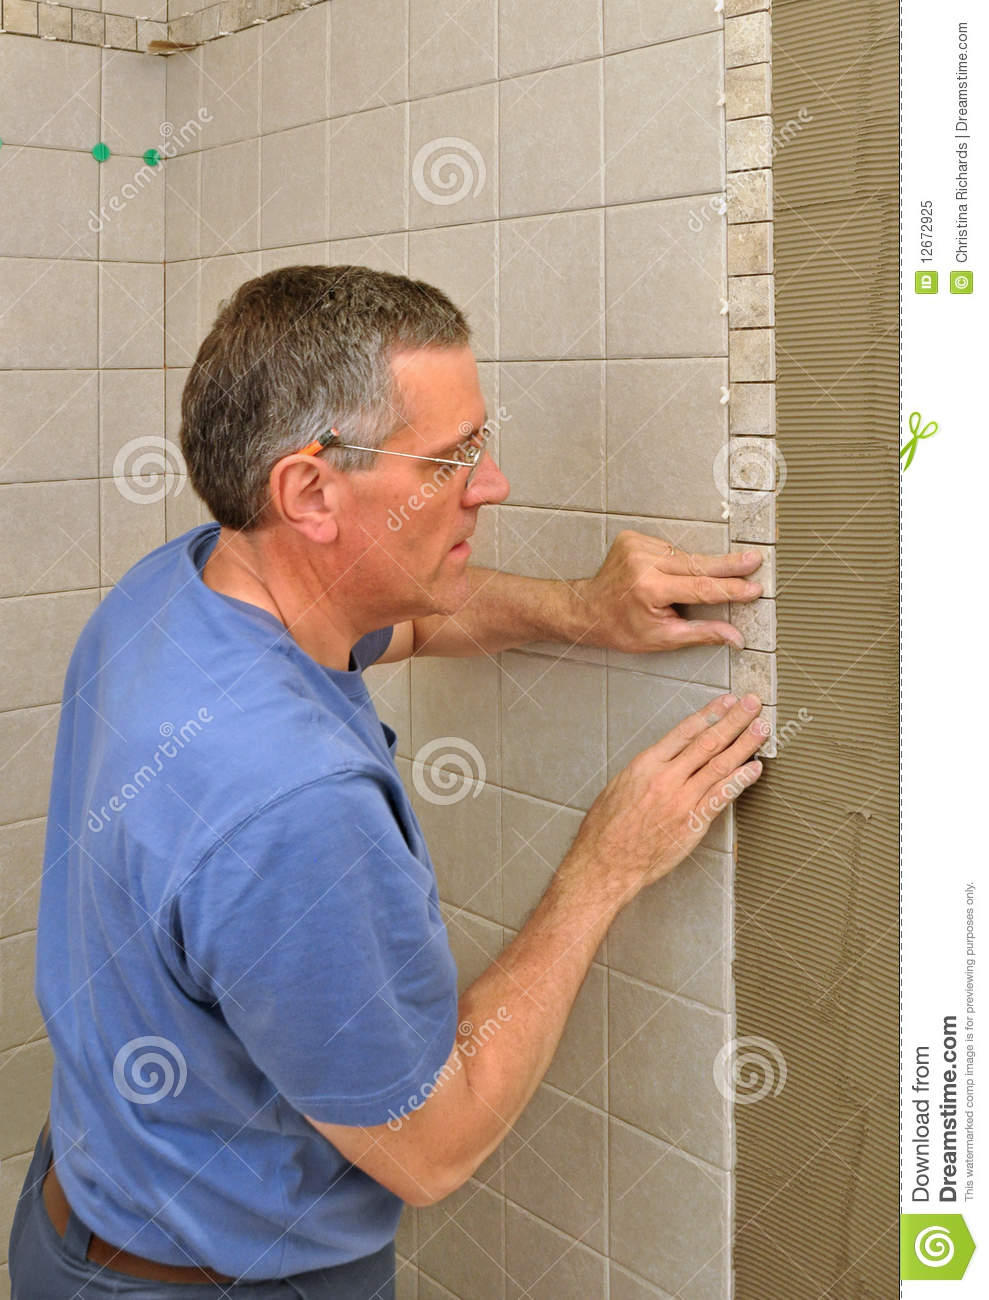 Man Installing Ceramic Tile Border Stock Image Image Of Worker